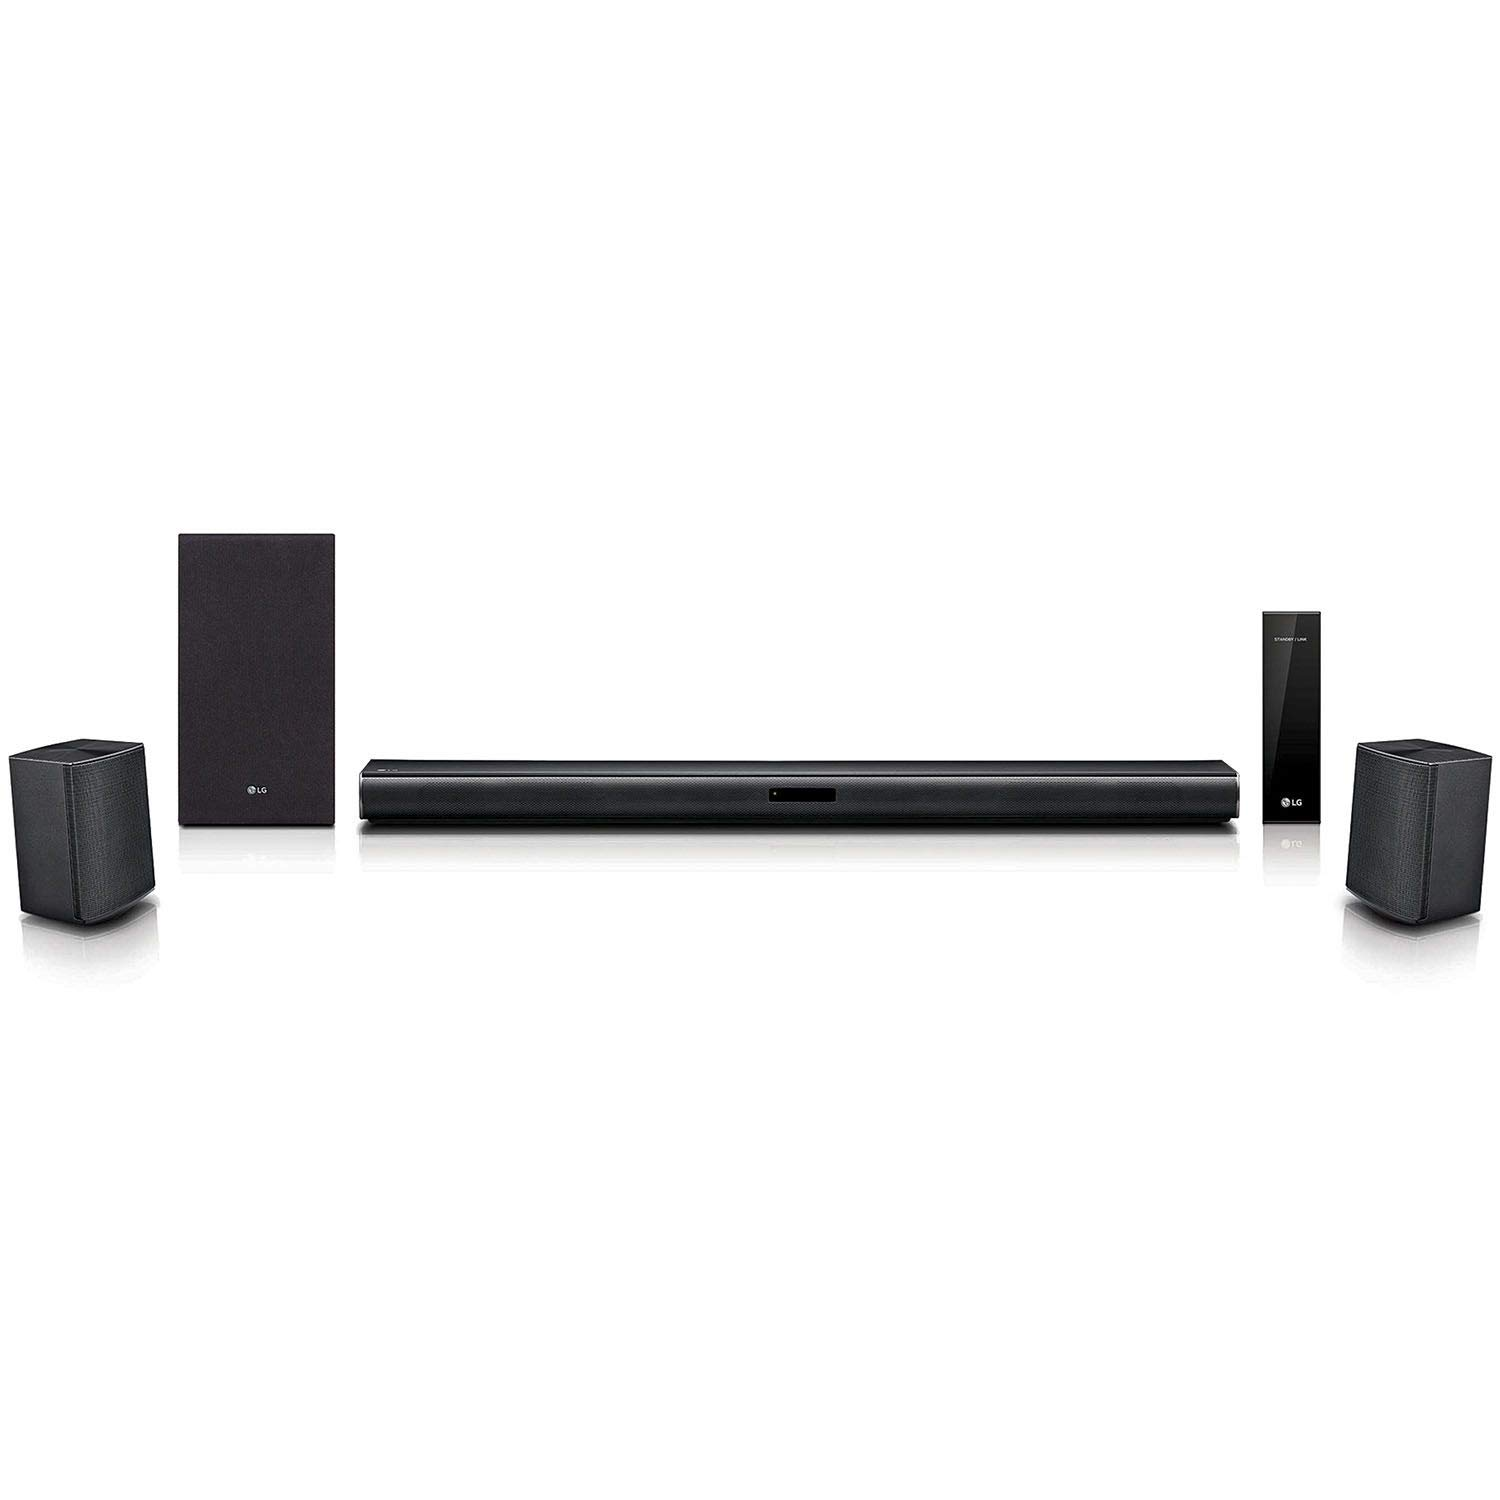 LG LASC58R Surround Wireless Subwoofer